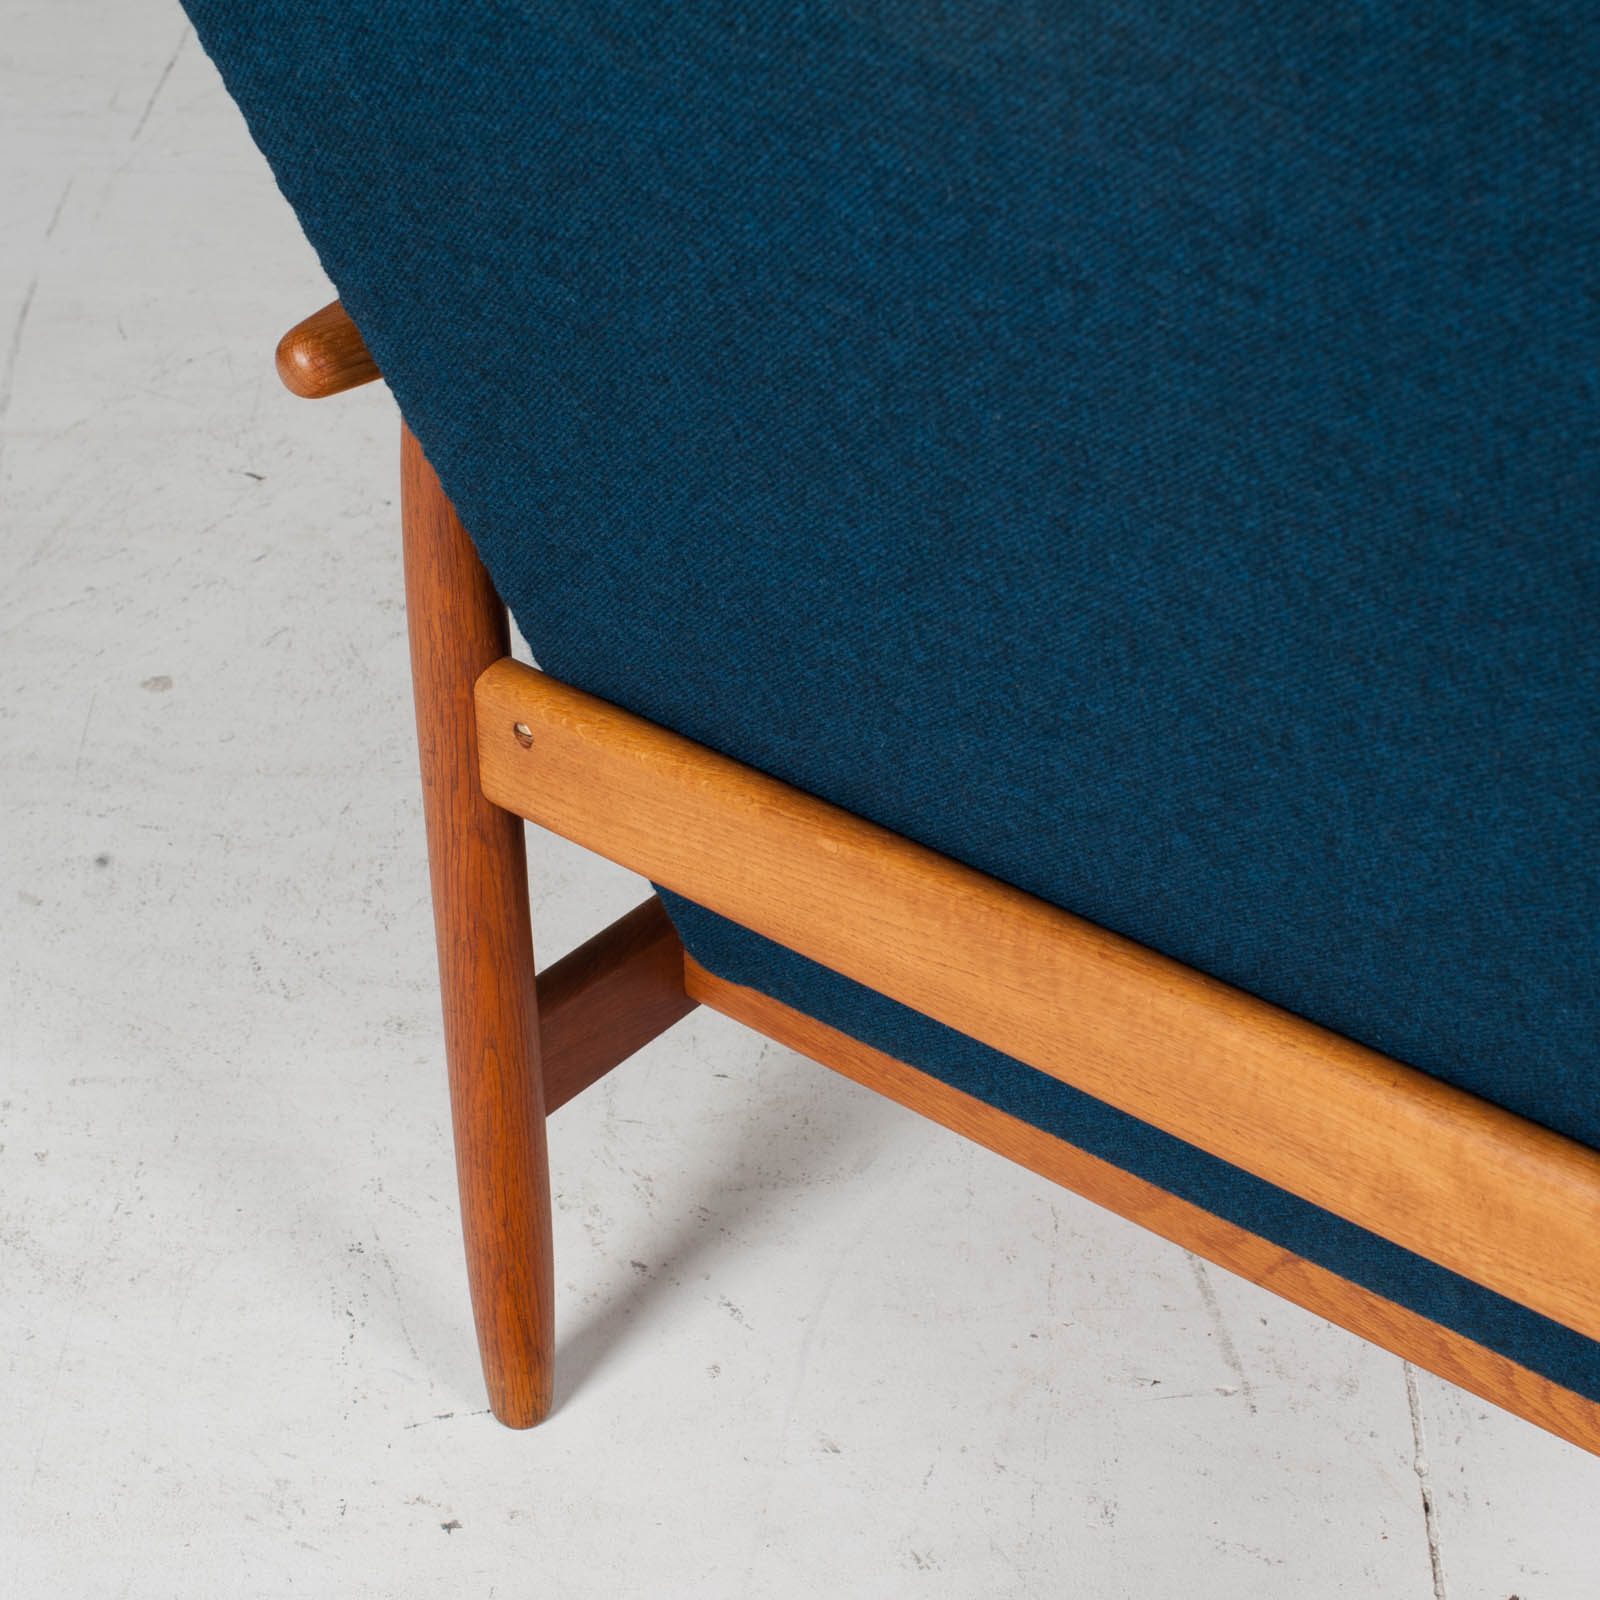 Armchair By Ejvind A. Johansson In Blue Upholstery, 1960s, Denmark11